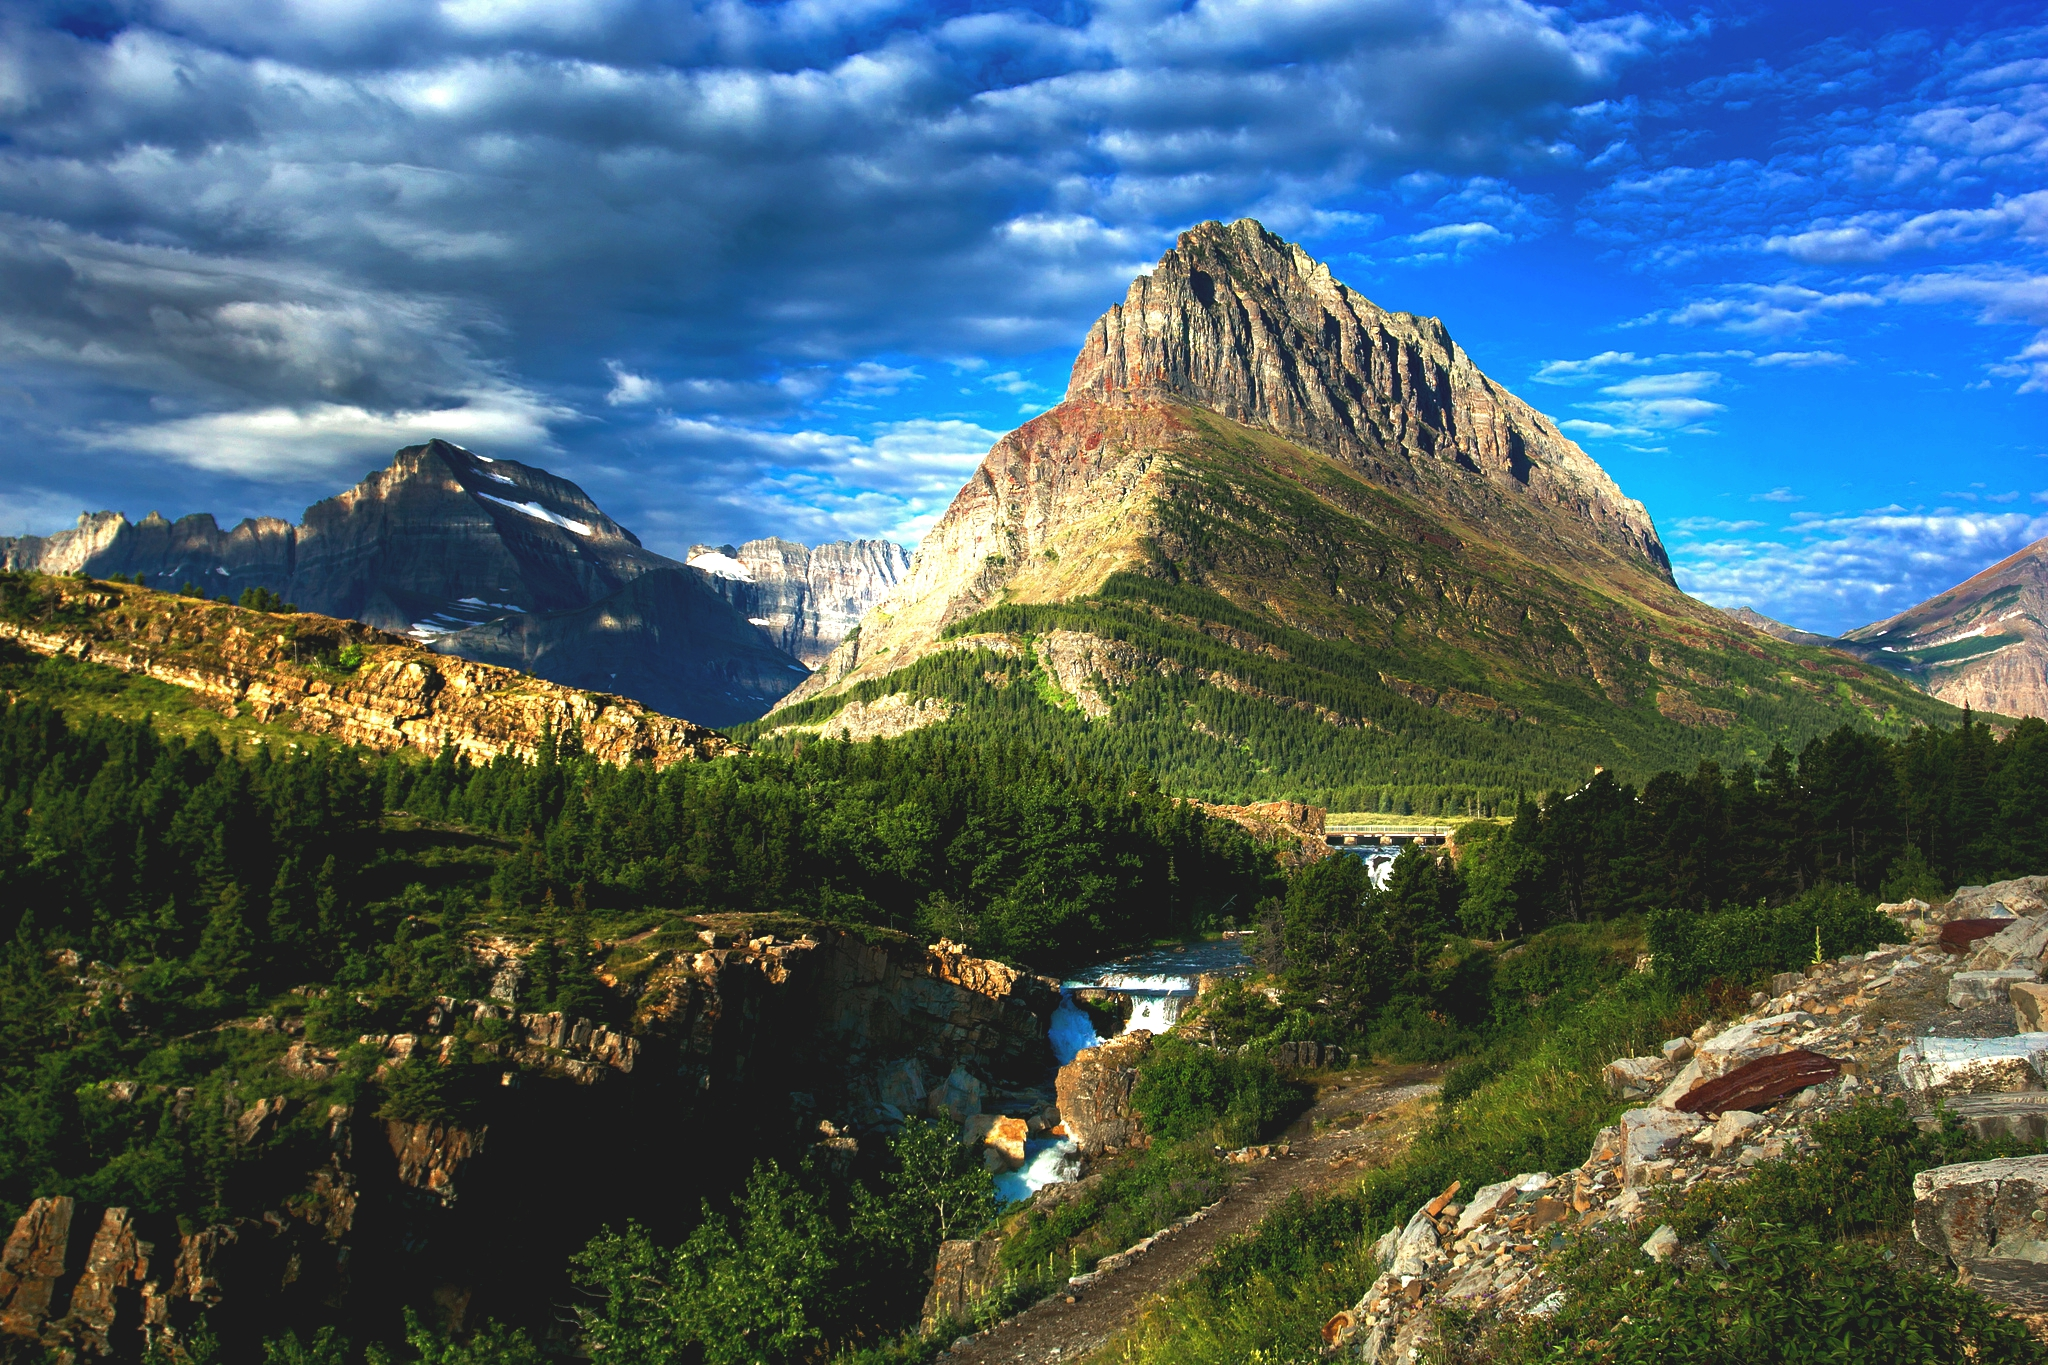 Glacier national park wallpapers high quality download free - Foto walpepeer ...